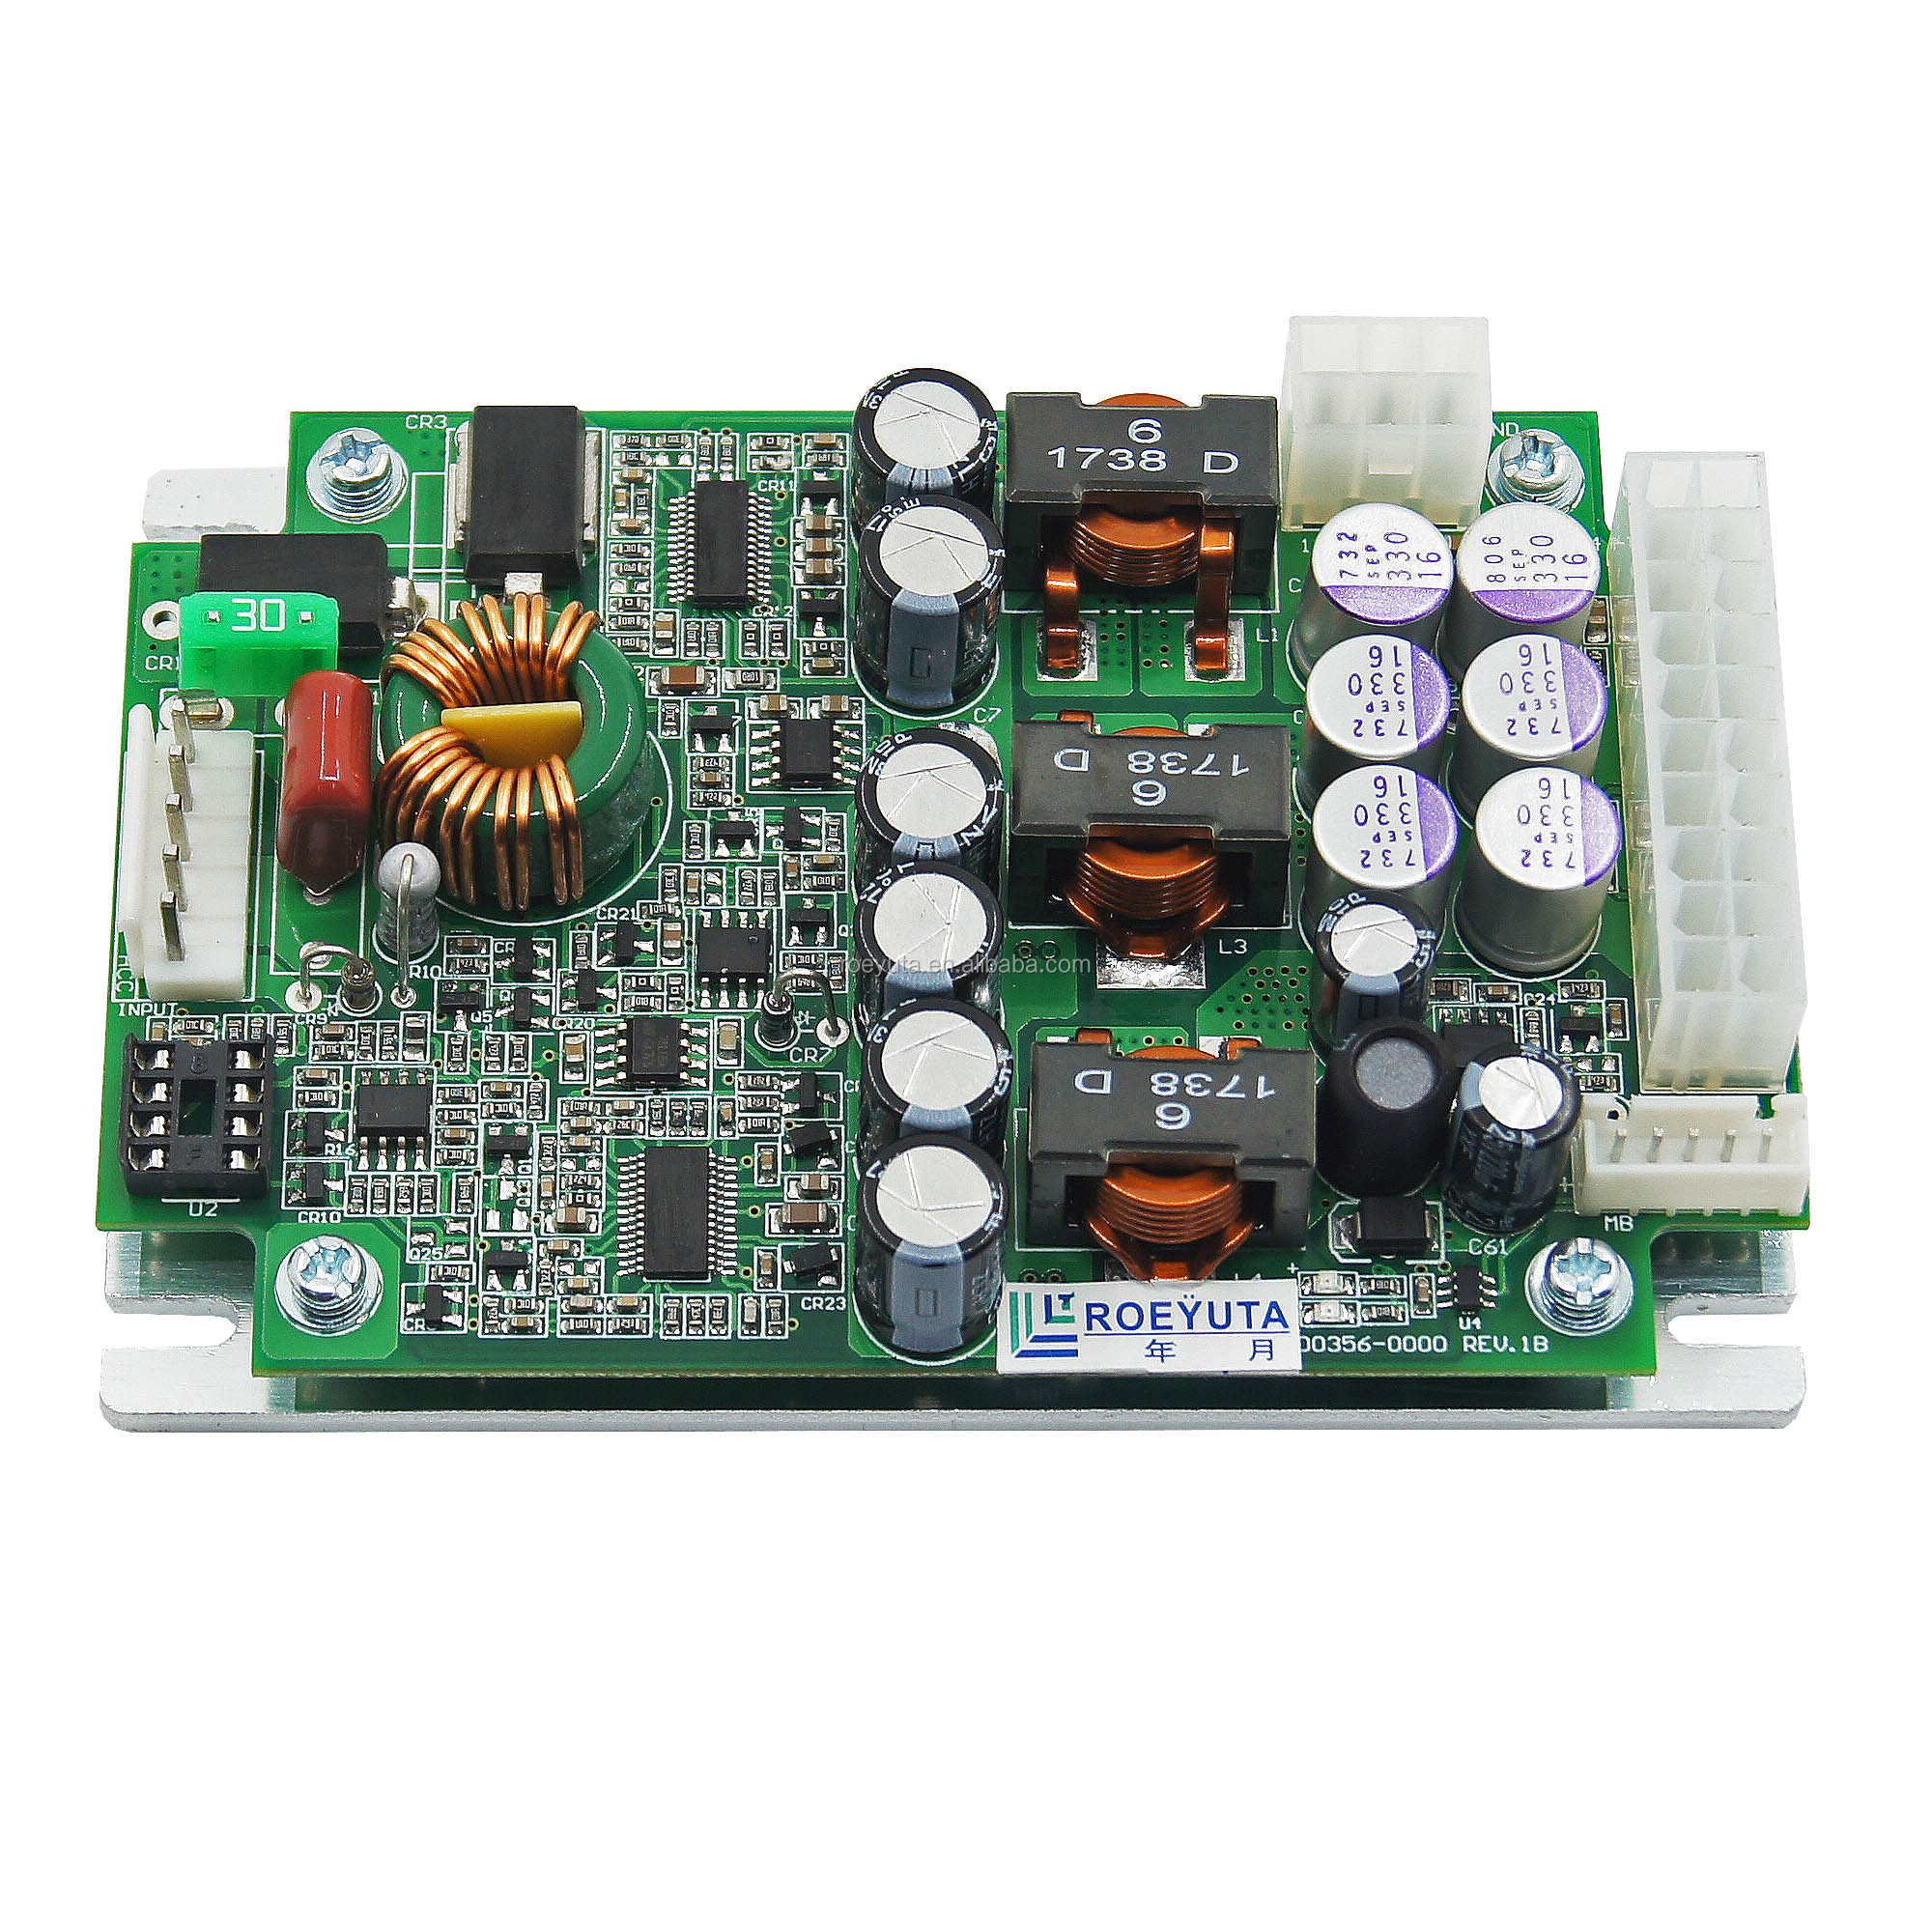 Dc to dc 12-24 v input atx power supply 300w for vehicular computer or other